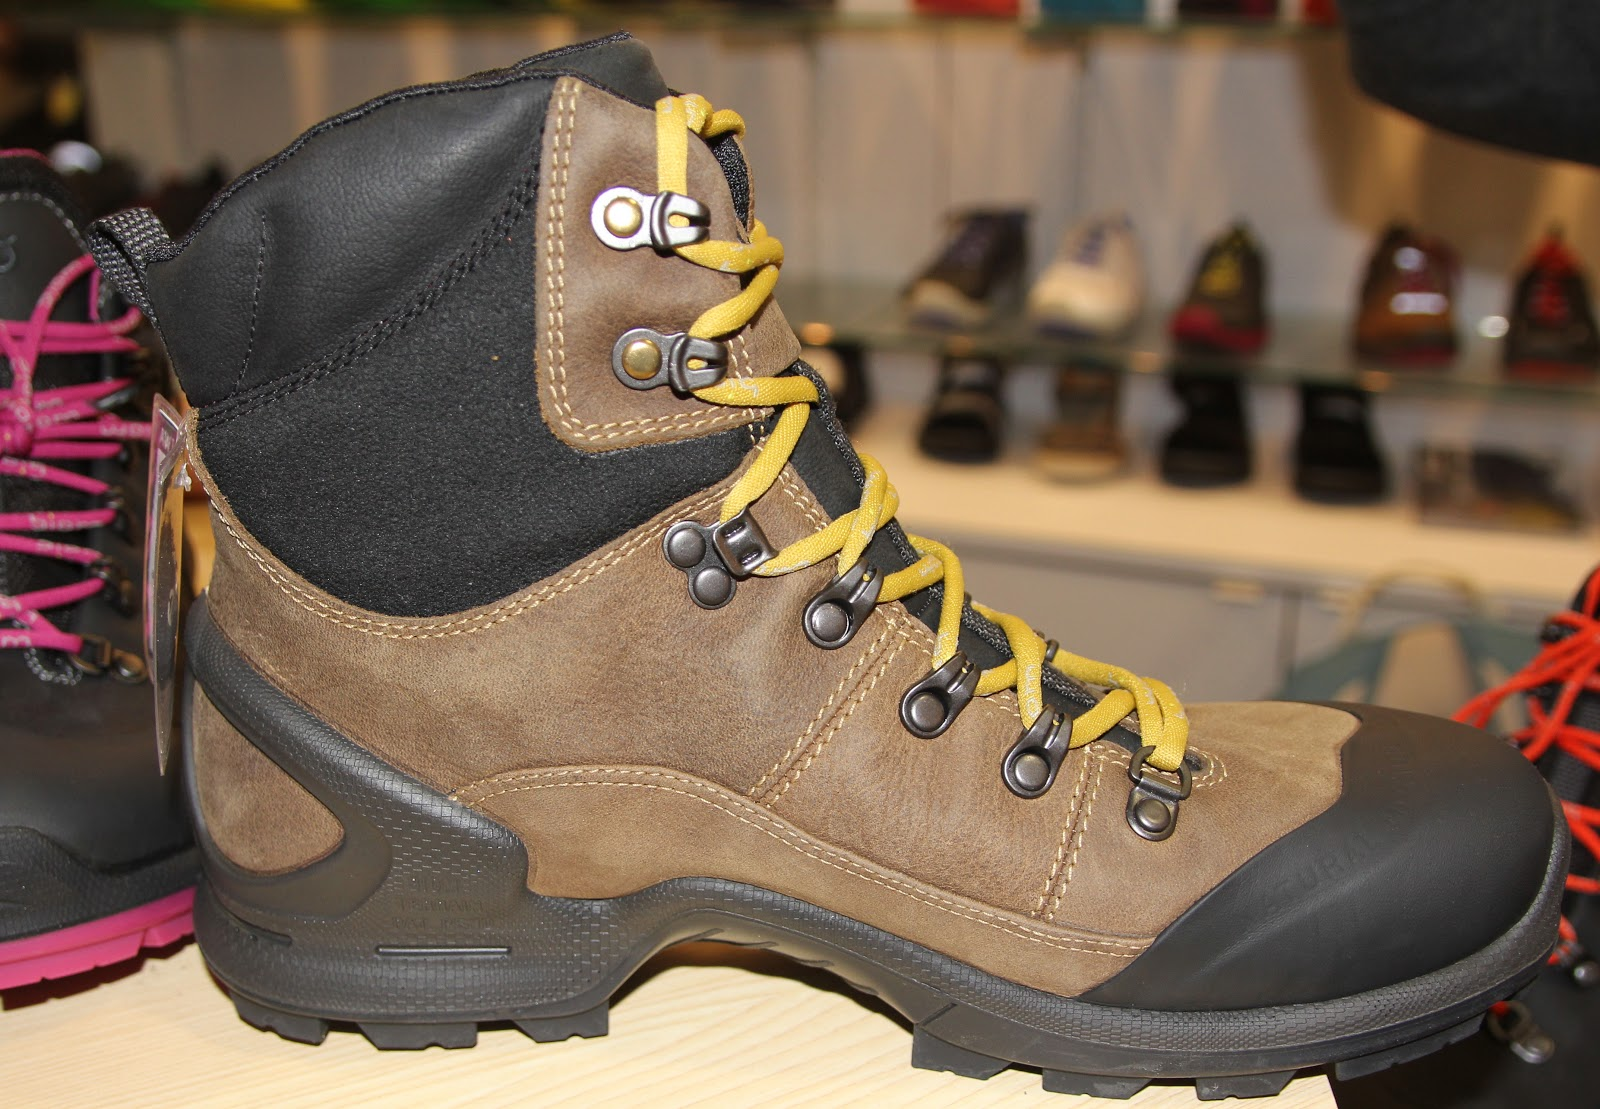 ... tough toe cap, direct injection two component PU /rubber sole,  extremely durable and functional uppers, performance hiking high-cut boot  $250